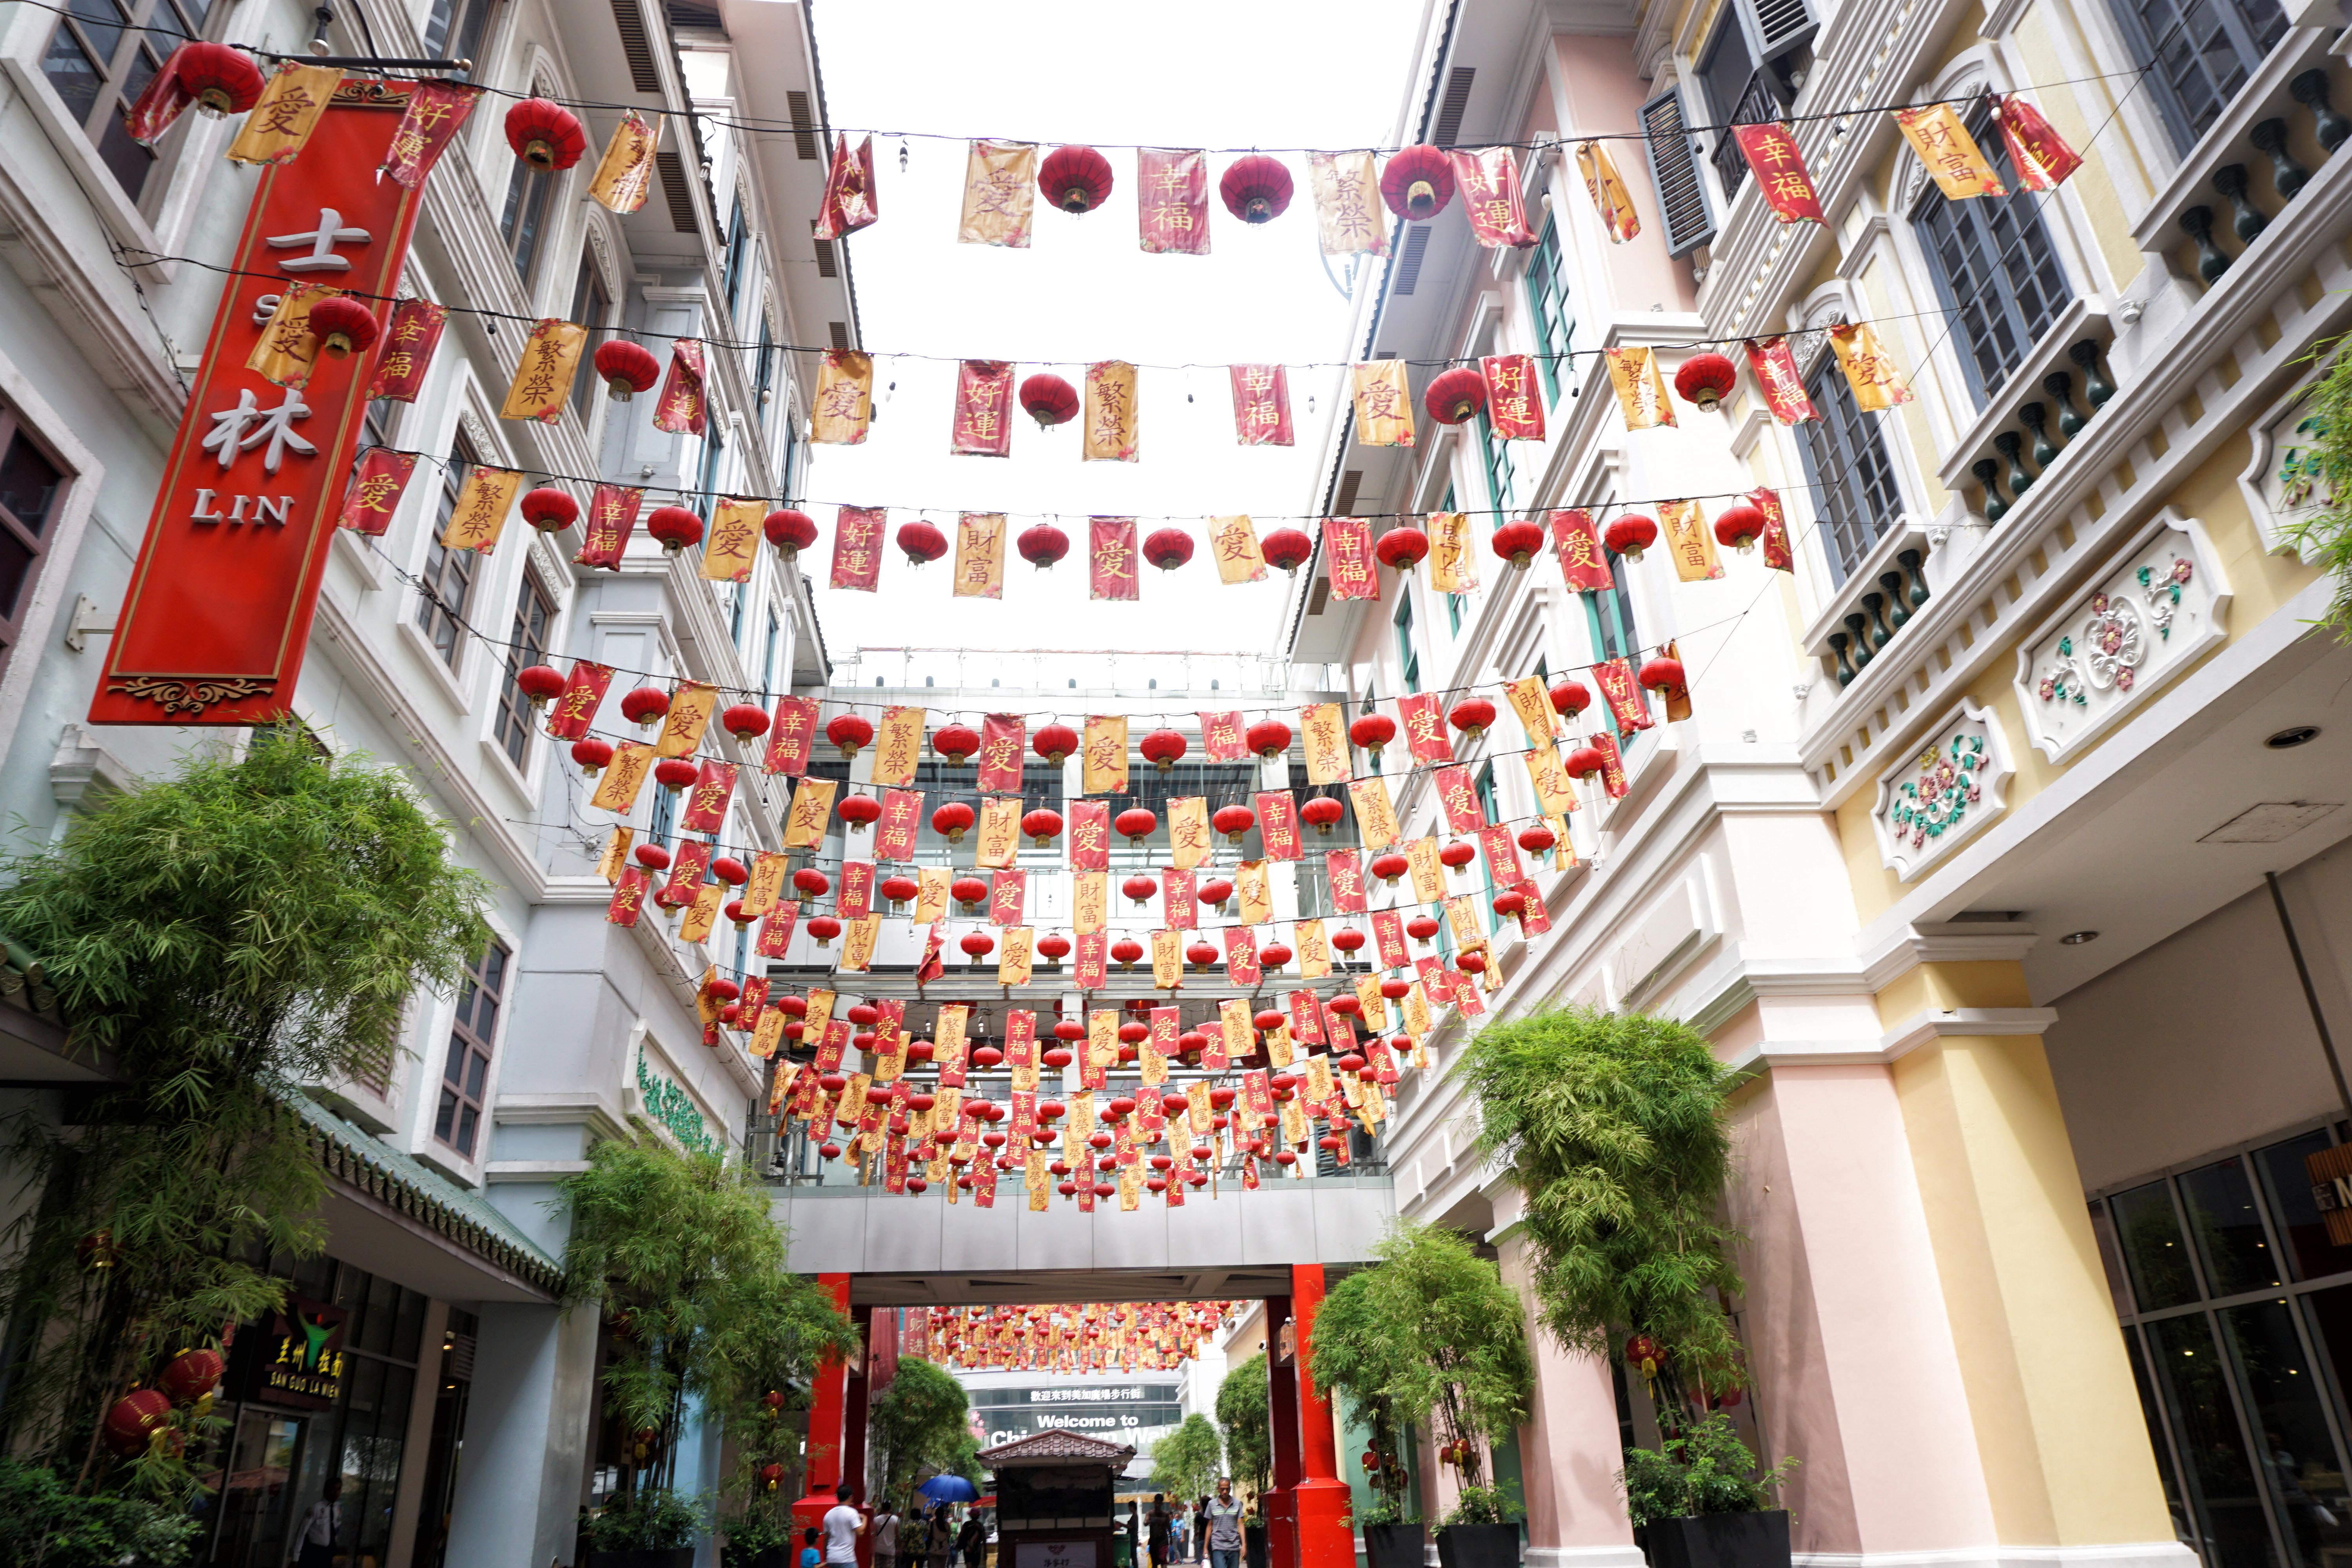 CHINESE CONNECTION. Symbols of Chinese culture are evident in Binondo, the worldu00e2u0080u0099s oldest Chinatown. Photo by Louie Lapat